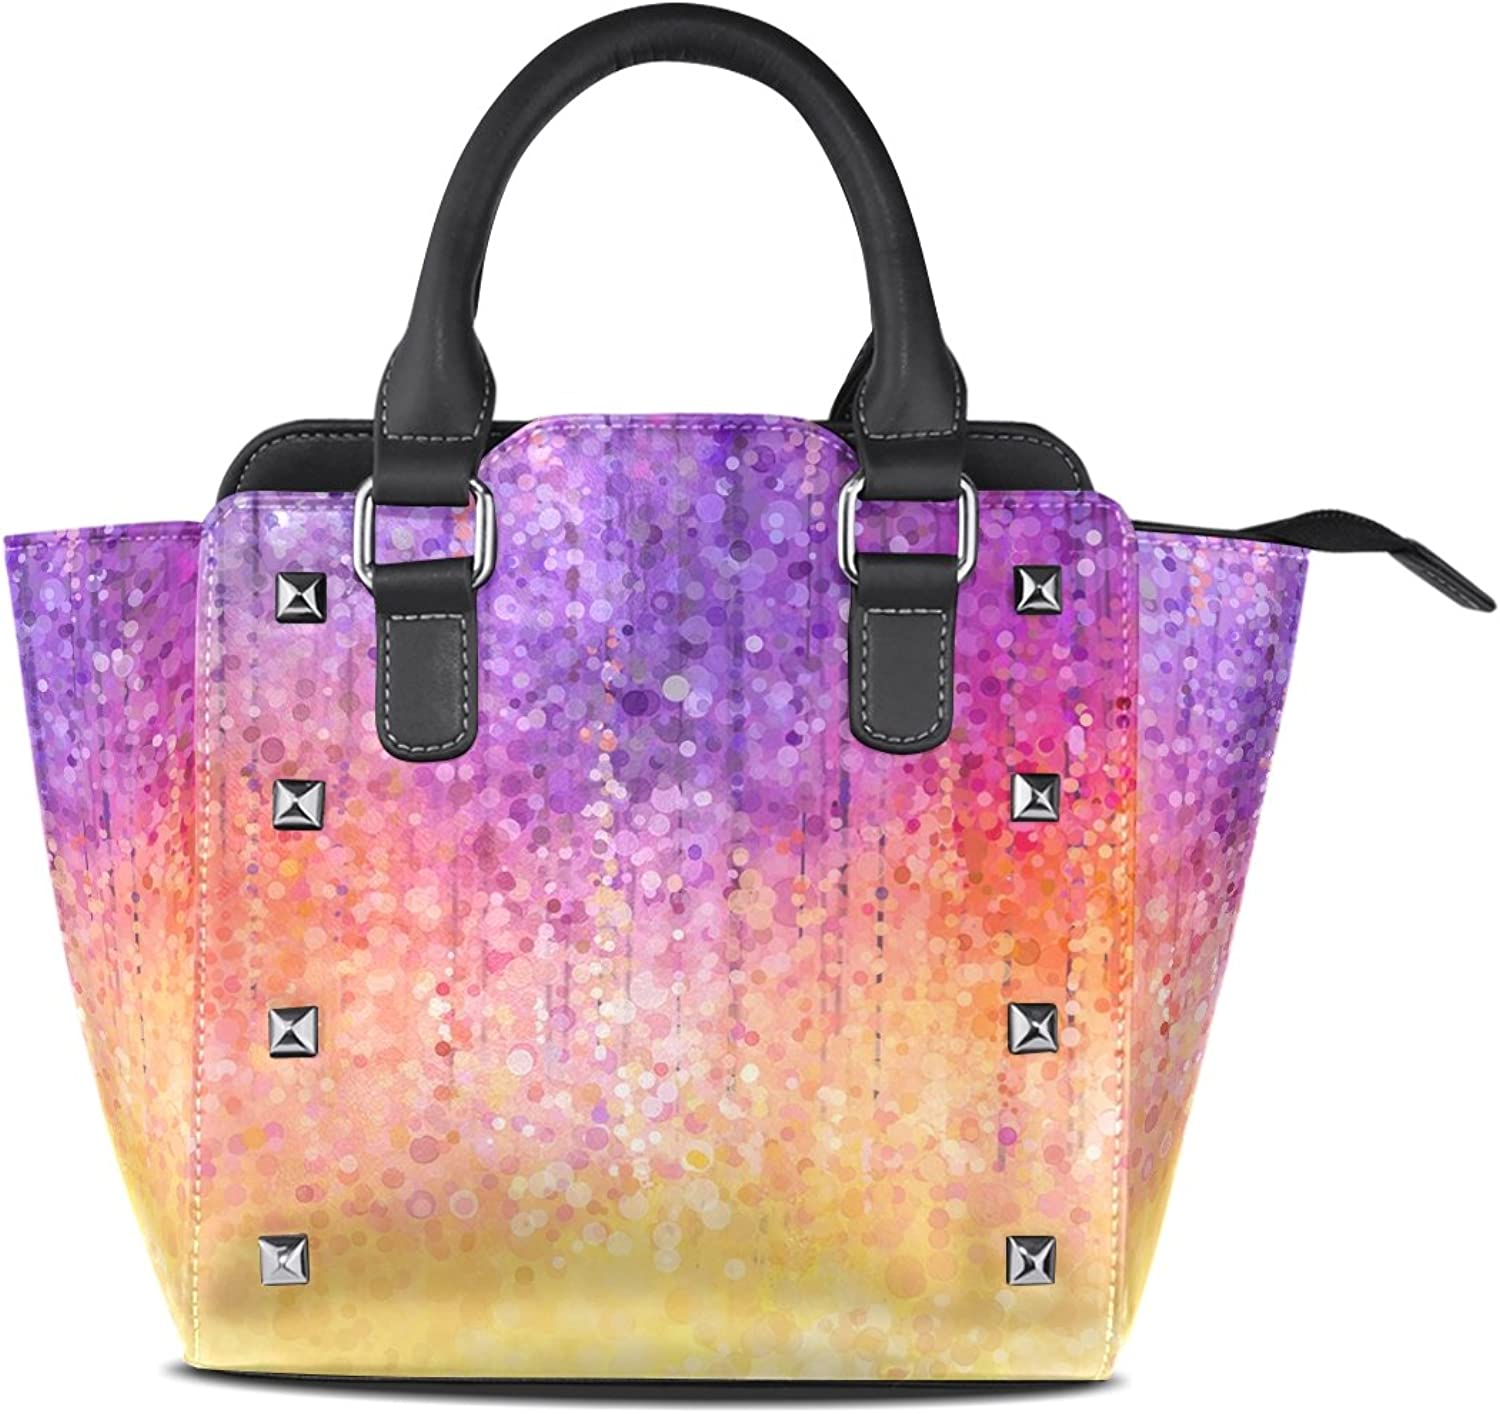 Sunlome Abstract Watercolor Painting Spring Purple Flower Print Handbags Women's PU Leather Top-Handle Shoulder Bags